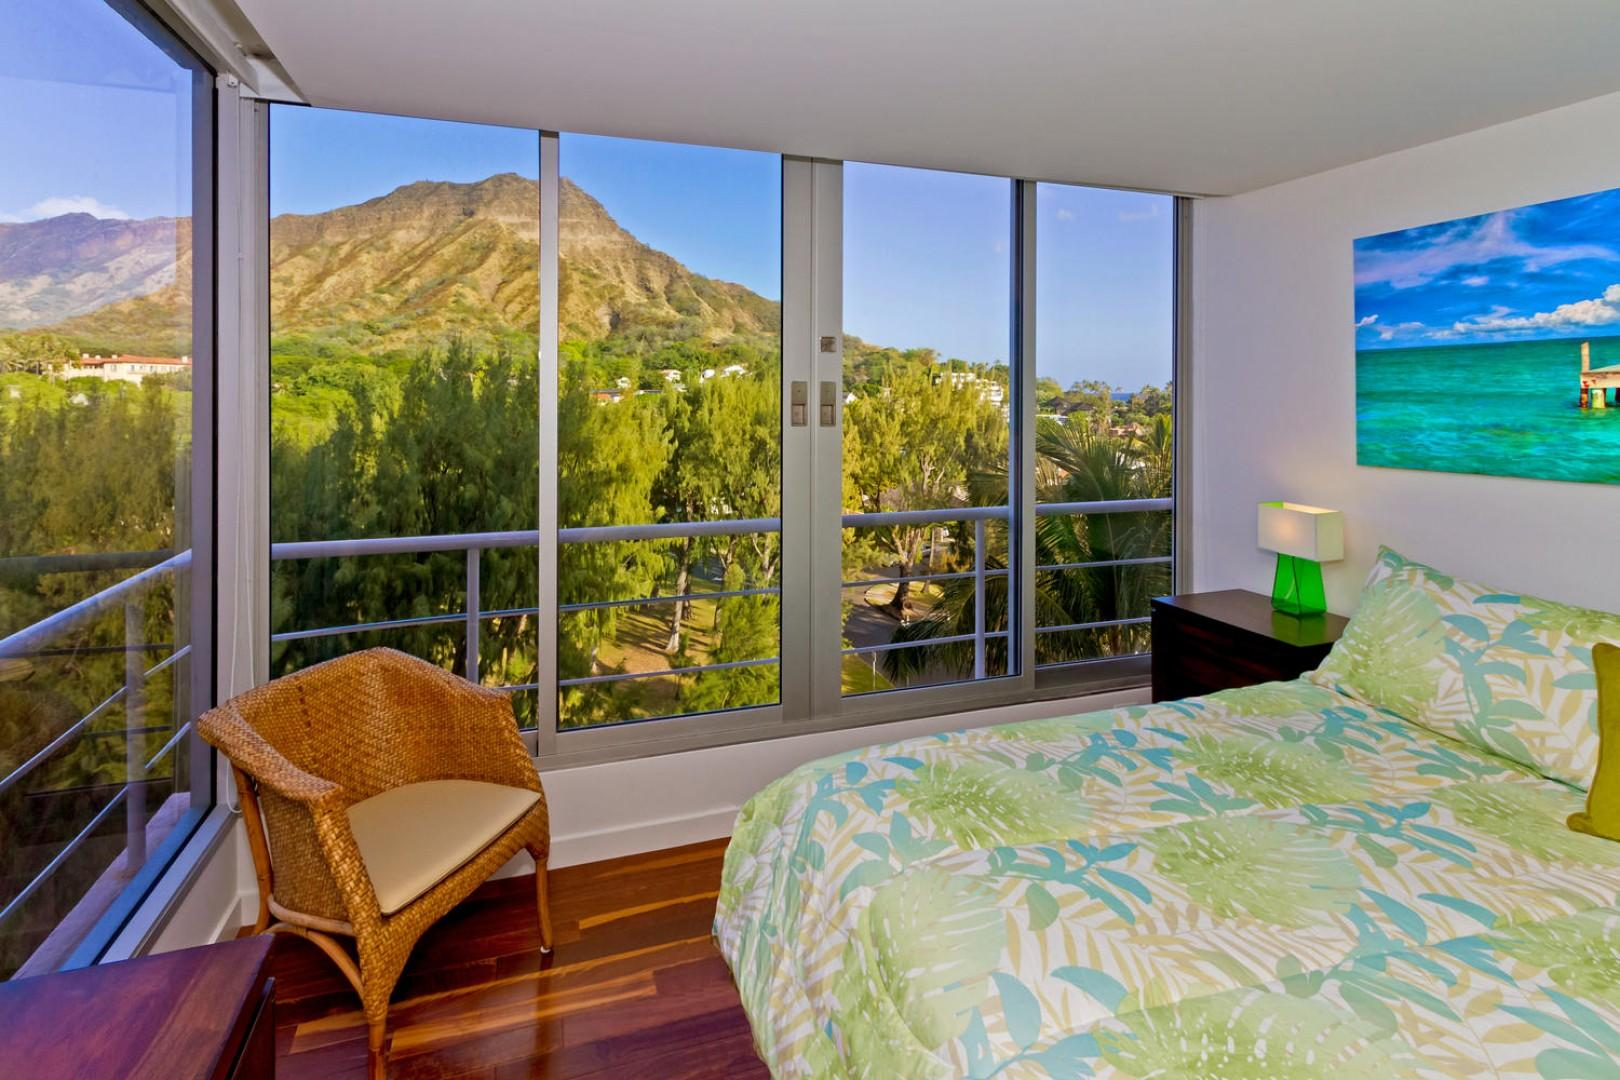 Master bedroom with Diamond Head views. Window AC unit is not pictured.